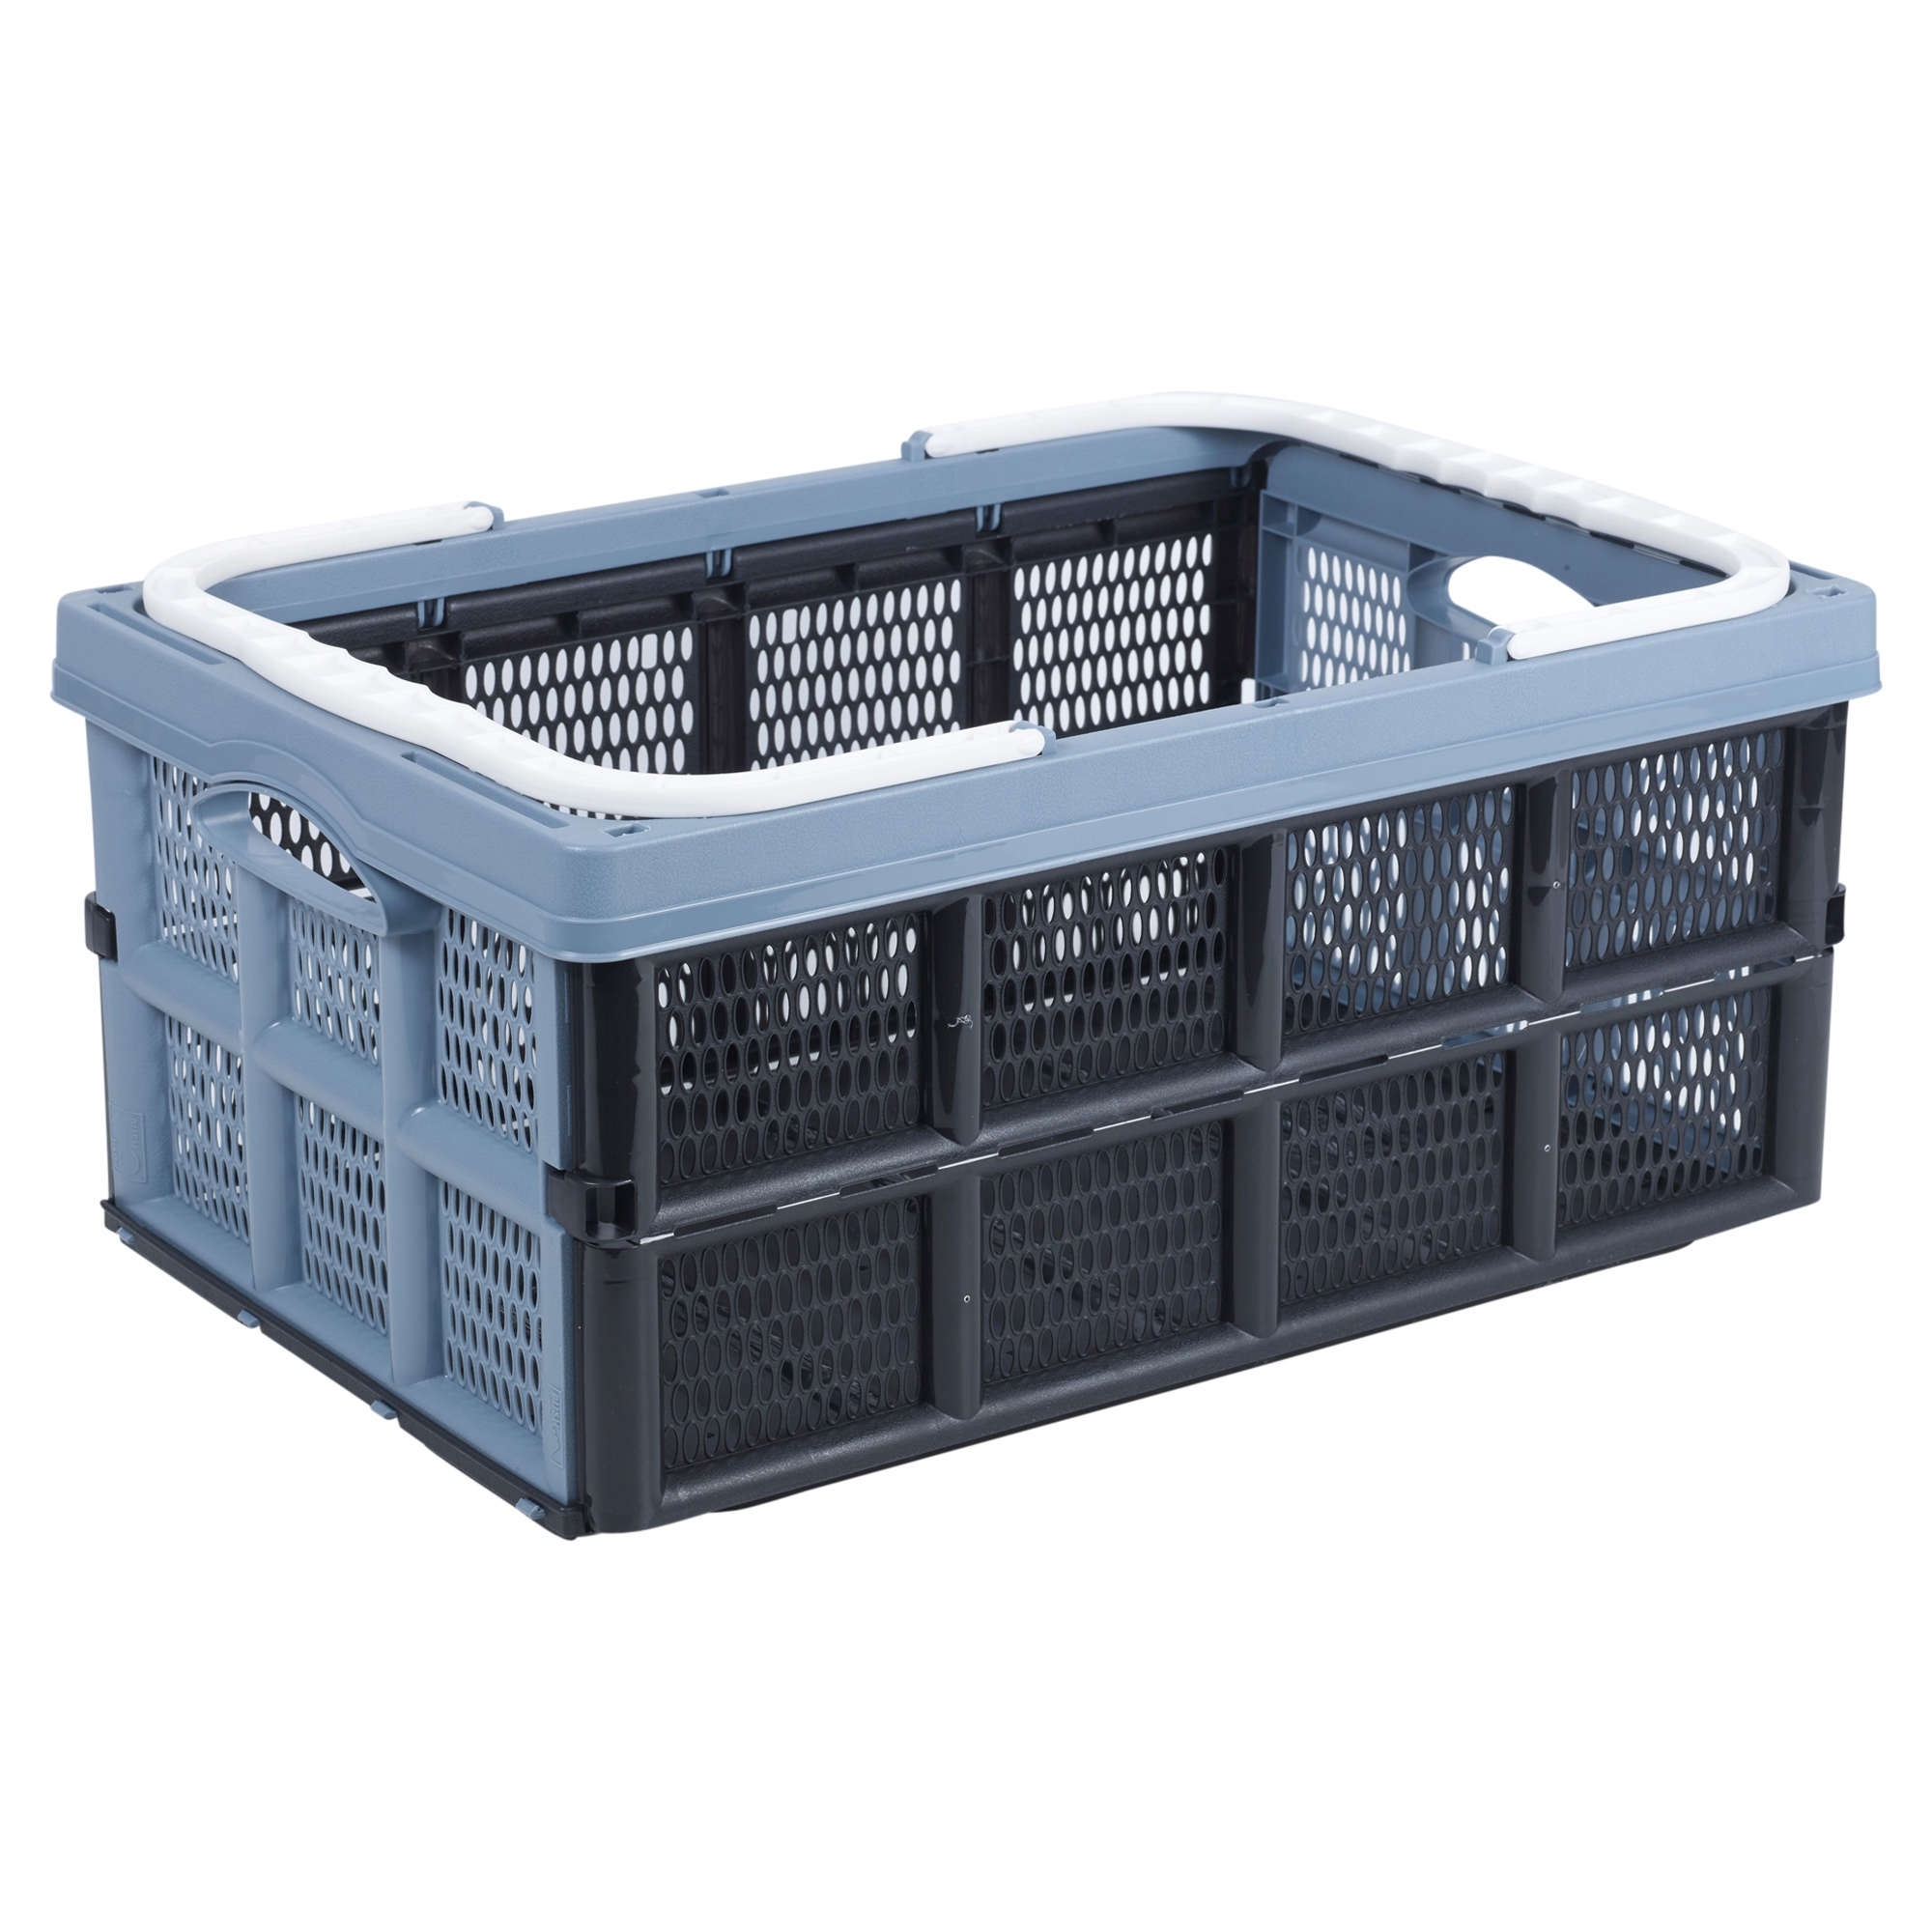 Collapsible Folding Plastic Storage Basket Crate Boxes